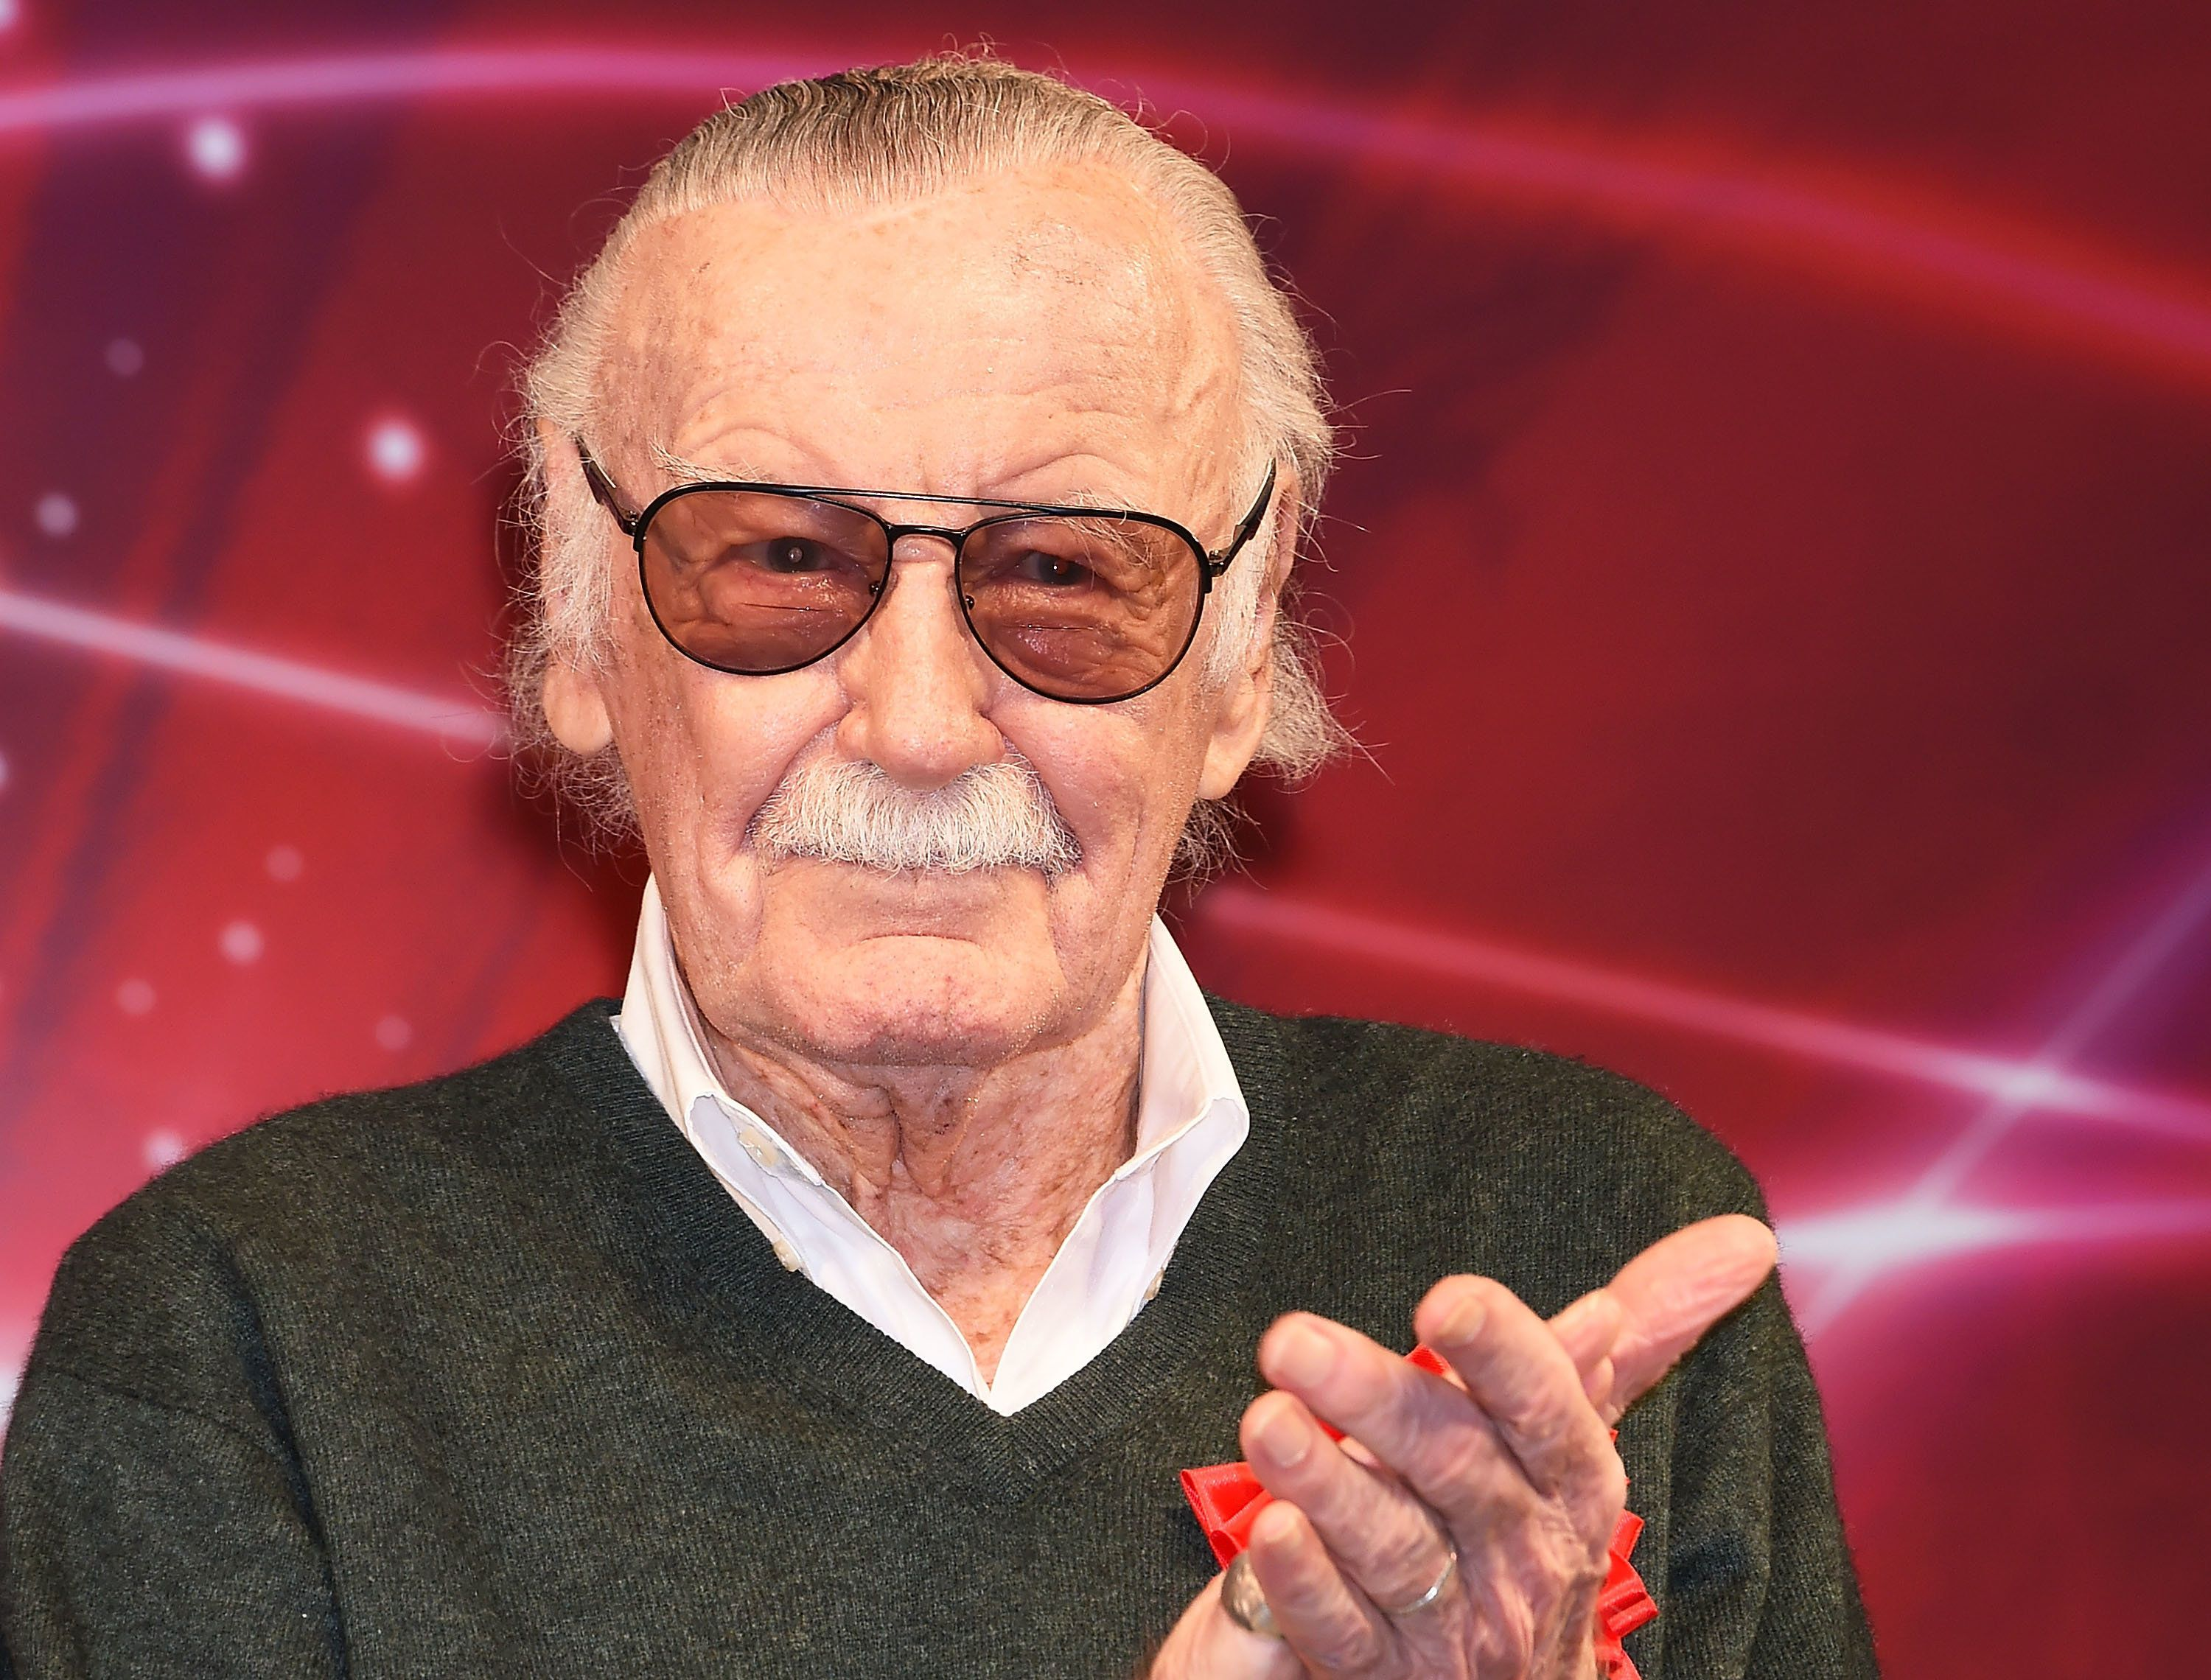 CHIBA, JAPAN - DECEMBER 01:  Stan Lee attends the opening day of Tokyo Comic Con at Makuhari Messe on December 1, 2017 in Chiba, Japan.  (Photo by Jun Sato/WireImage)